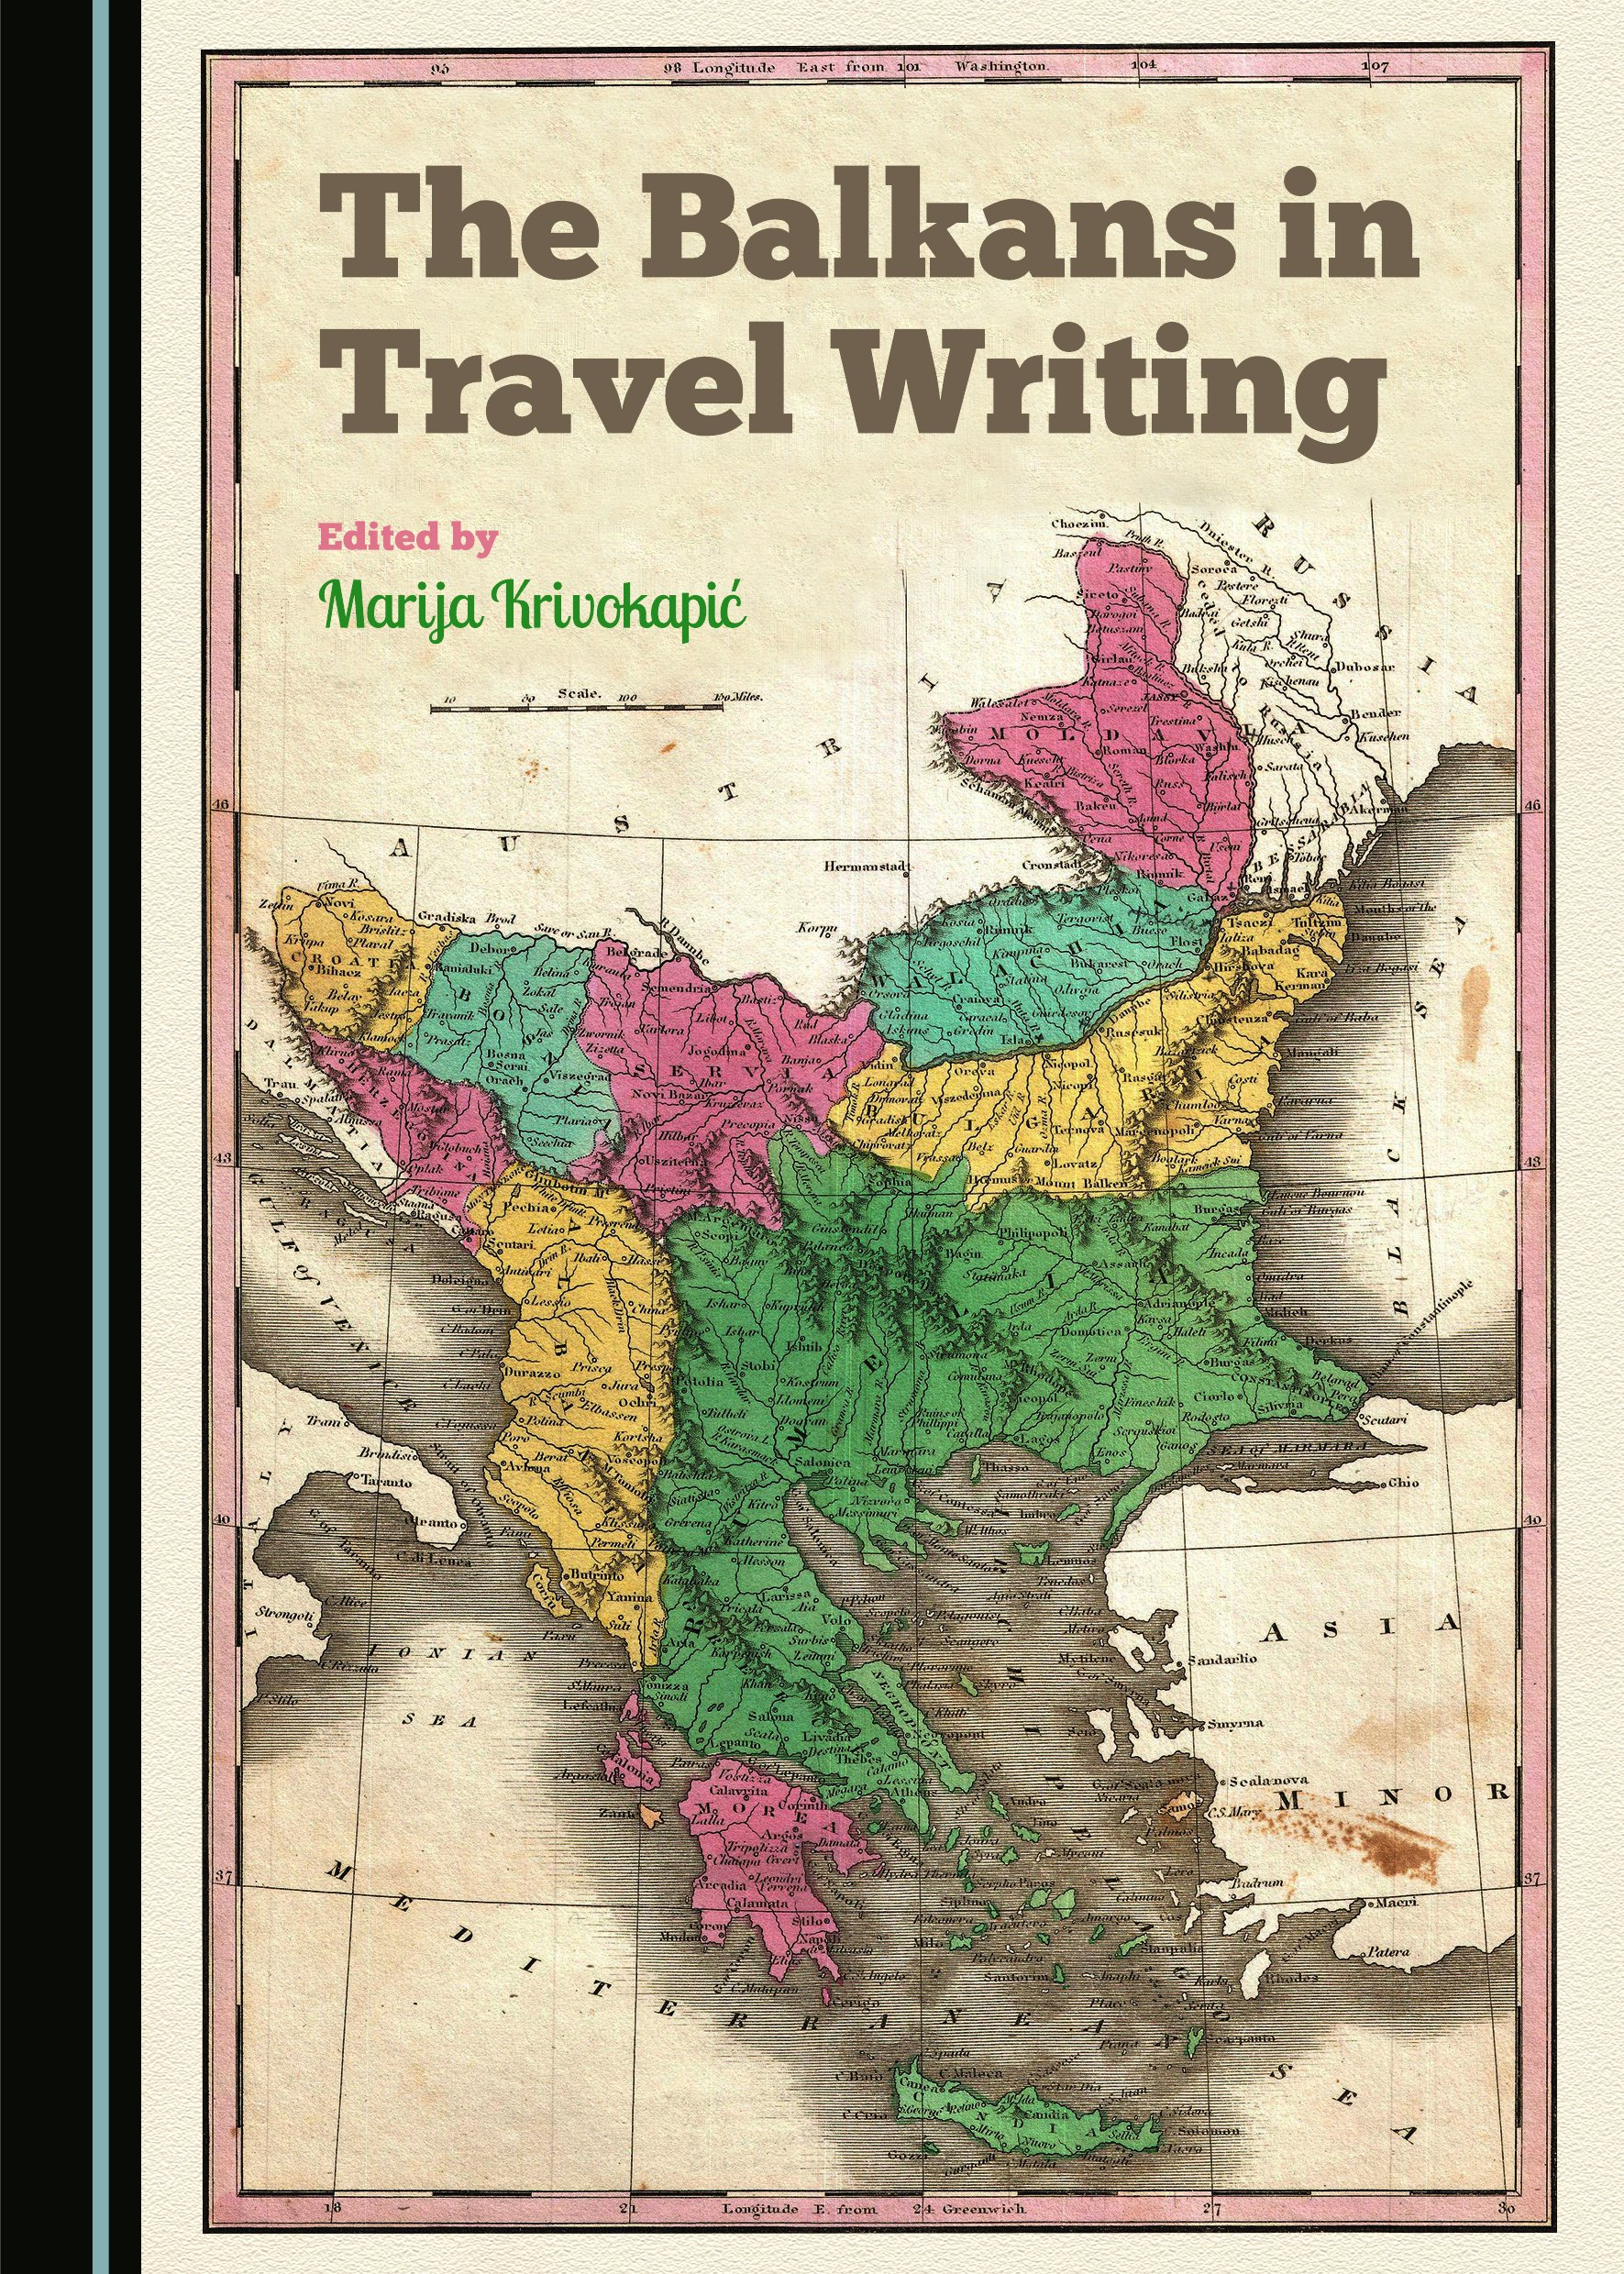 The Balkans in Travel Writing